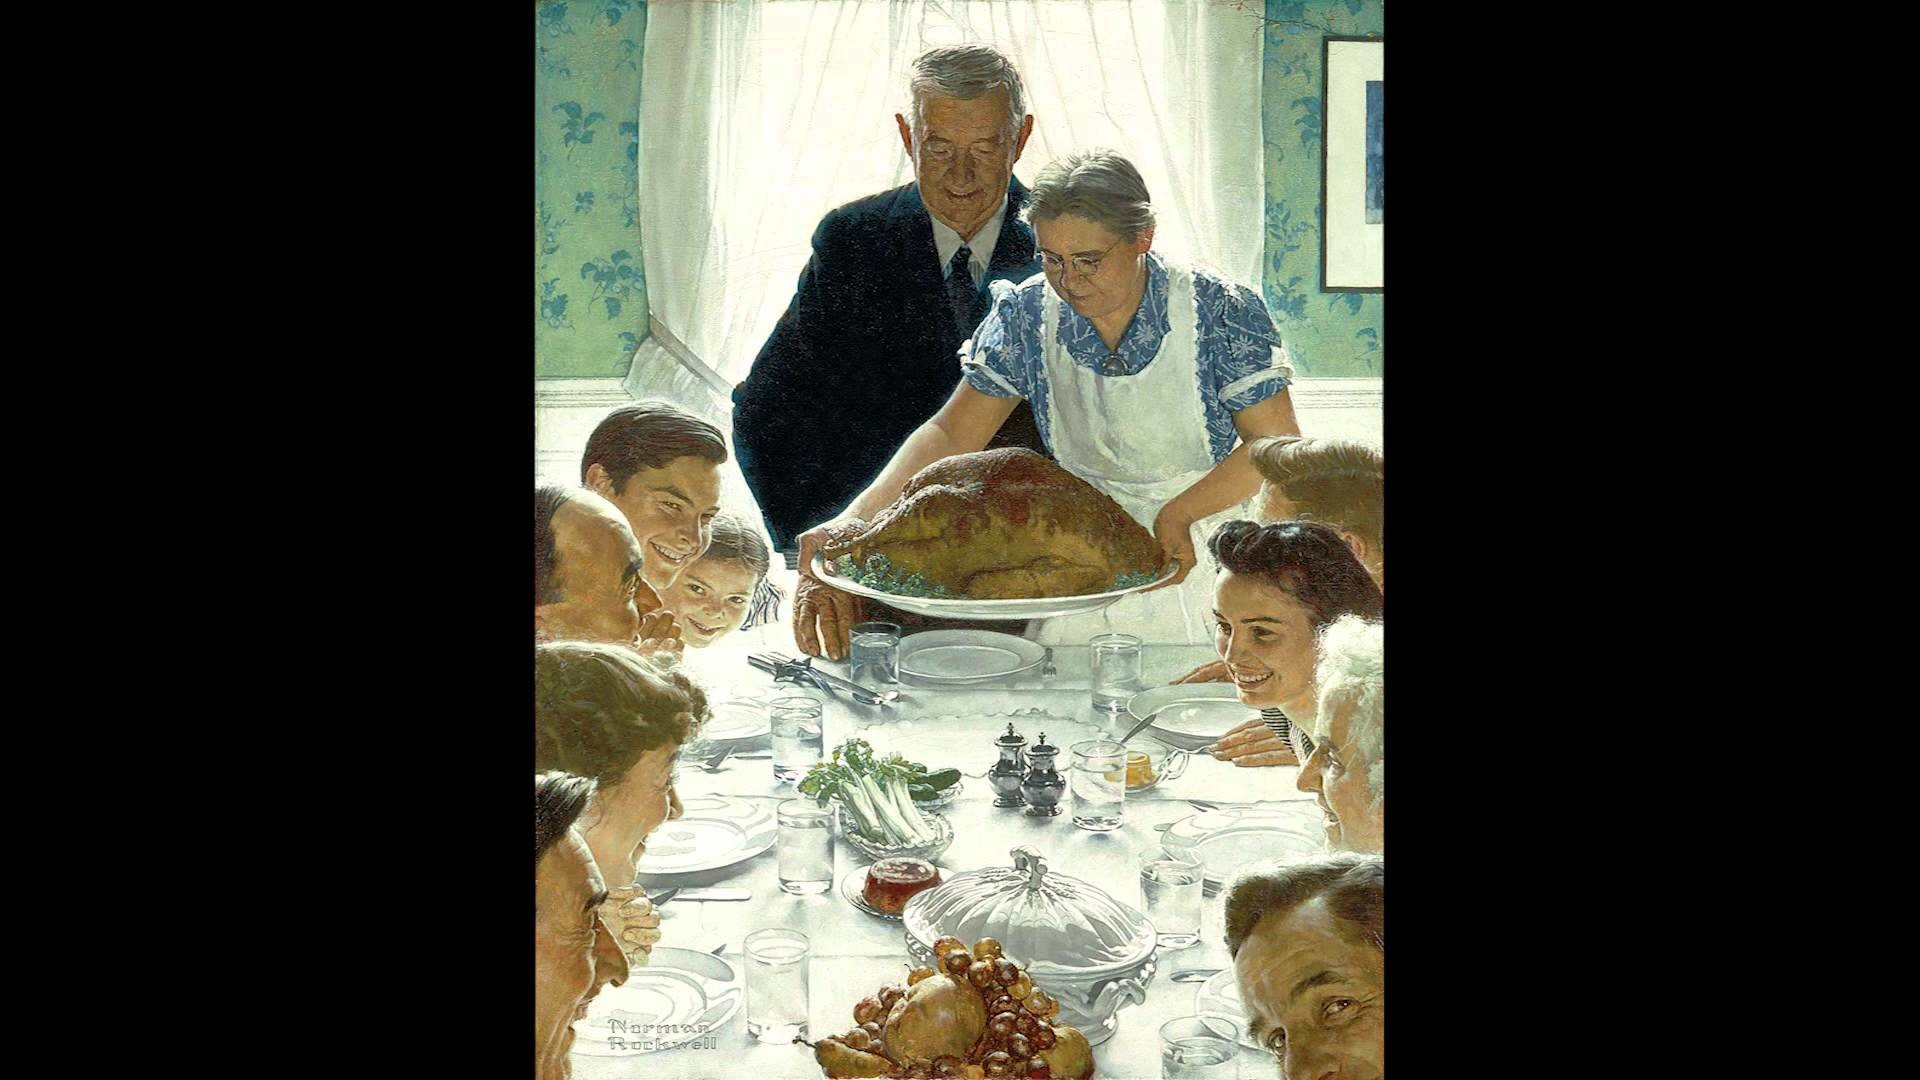 I Want To Download Cute Wallpapers Norman Rockwell Wallpaper 183 ①